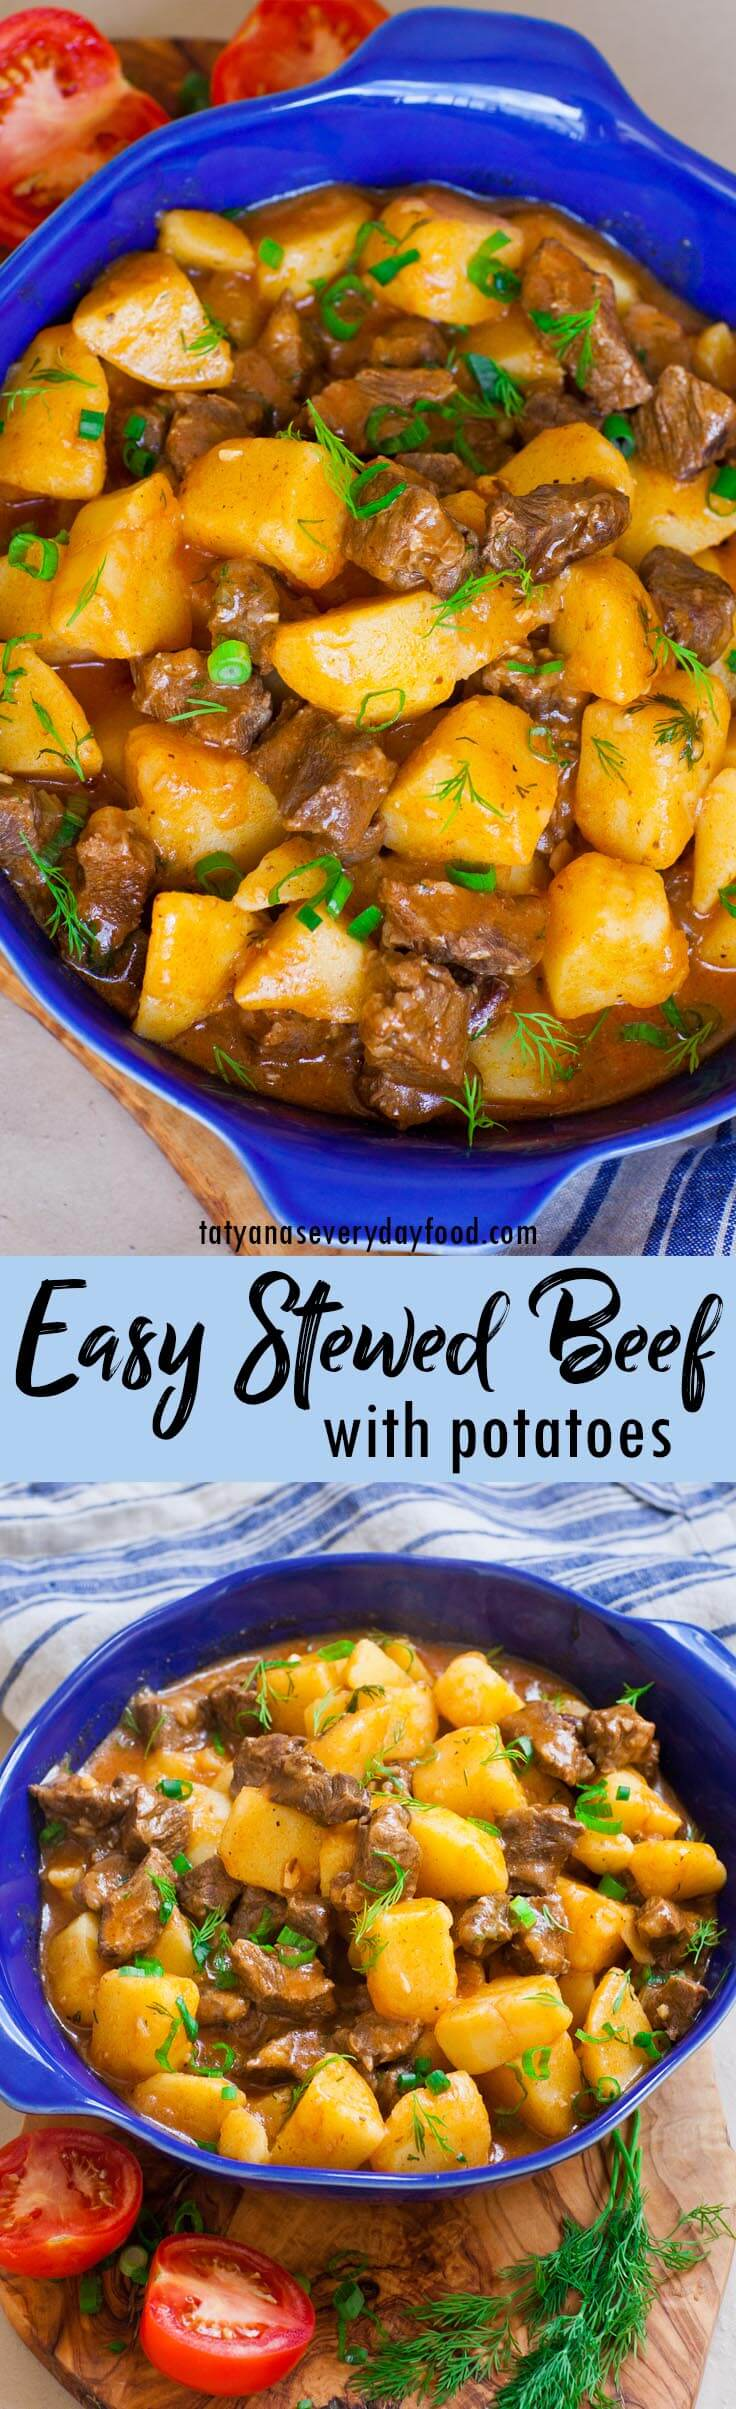 Easy Stewed Beef & Potatoes video recipe